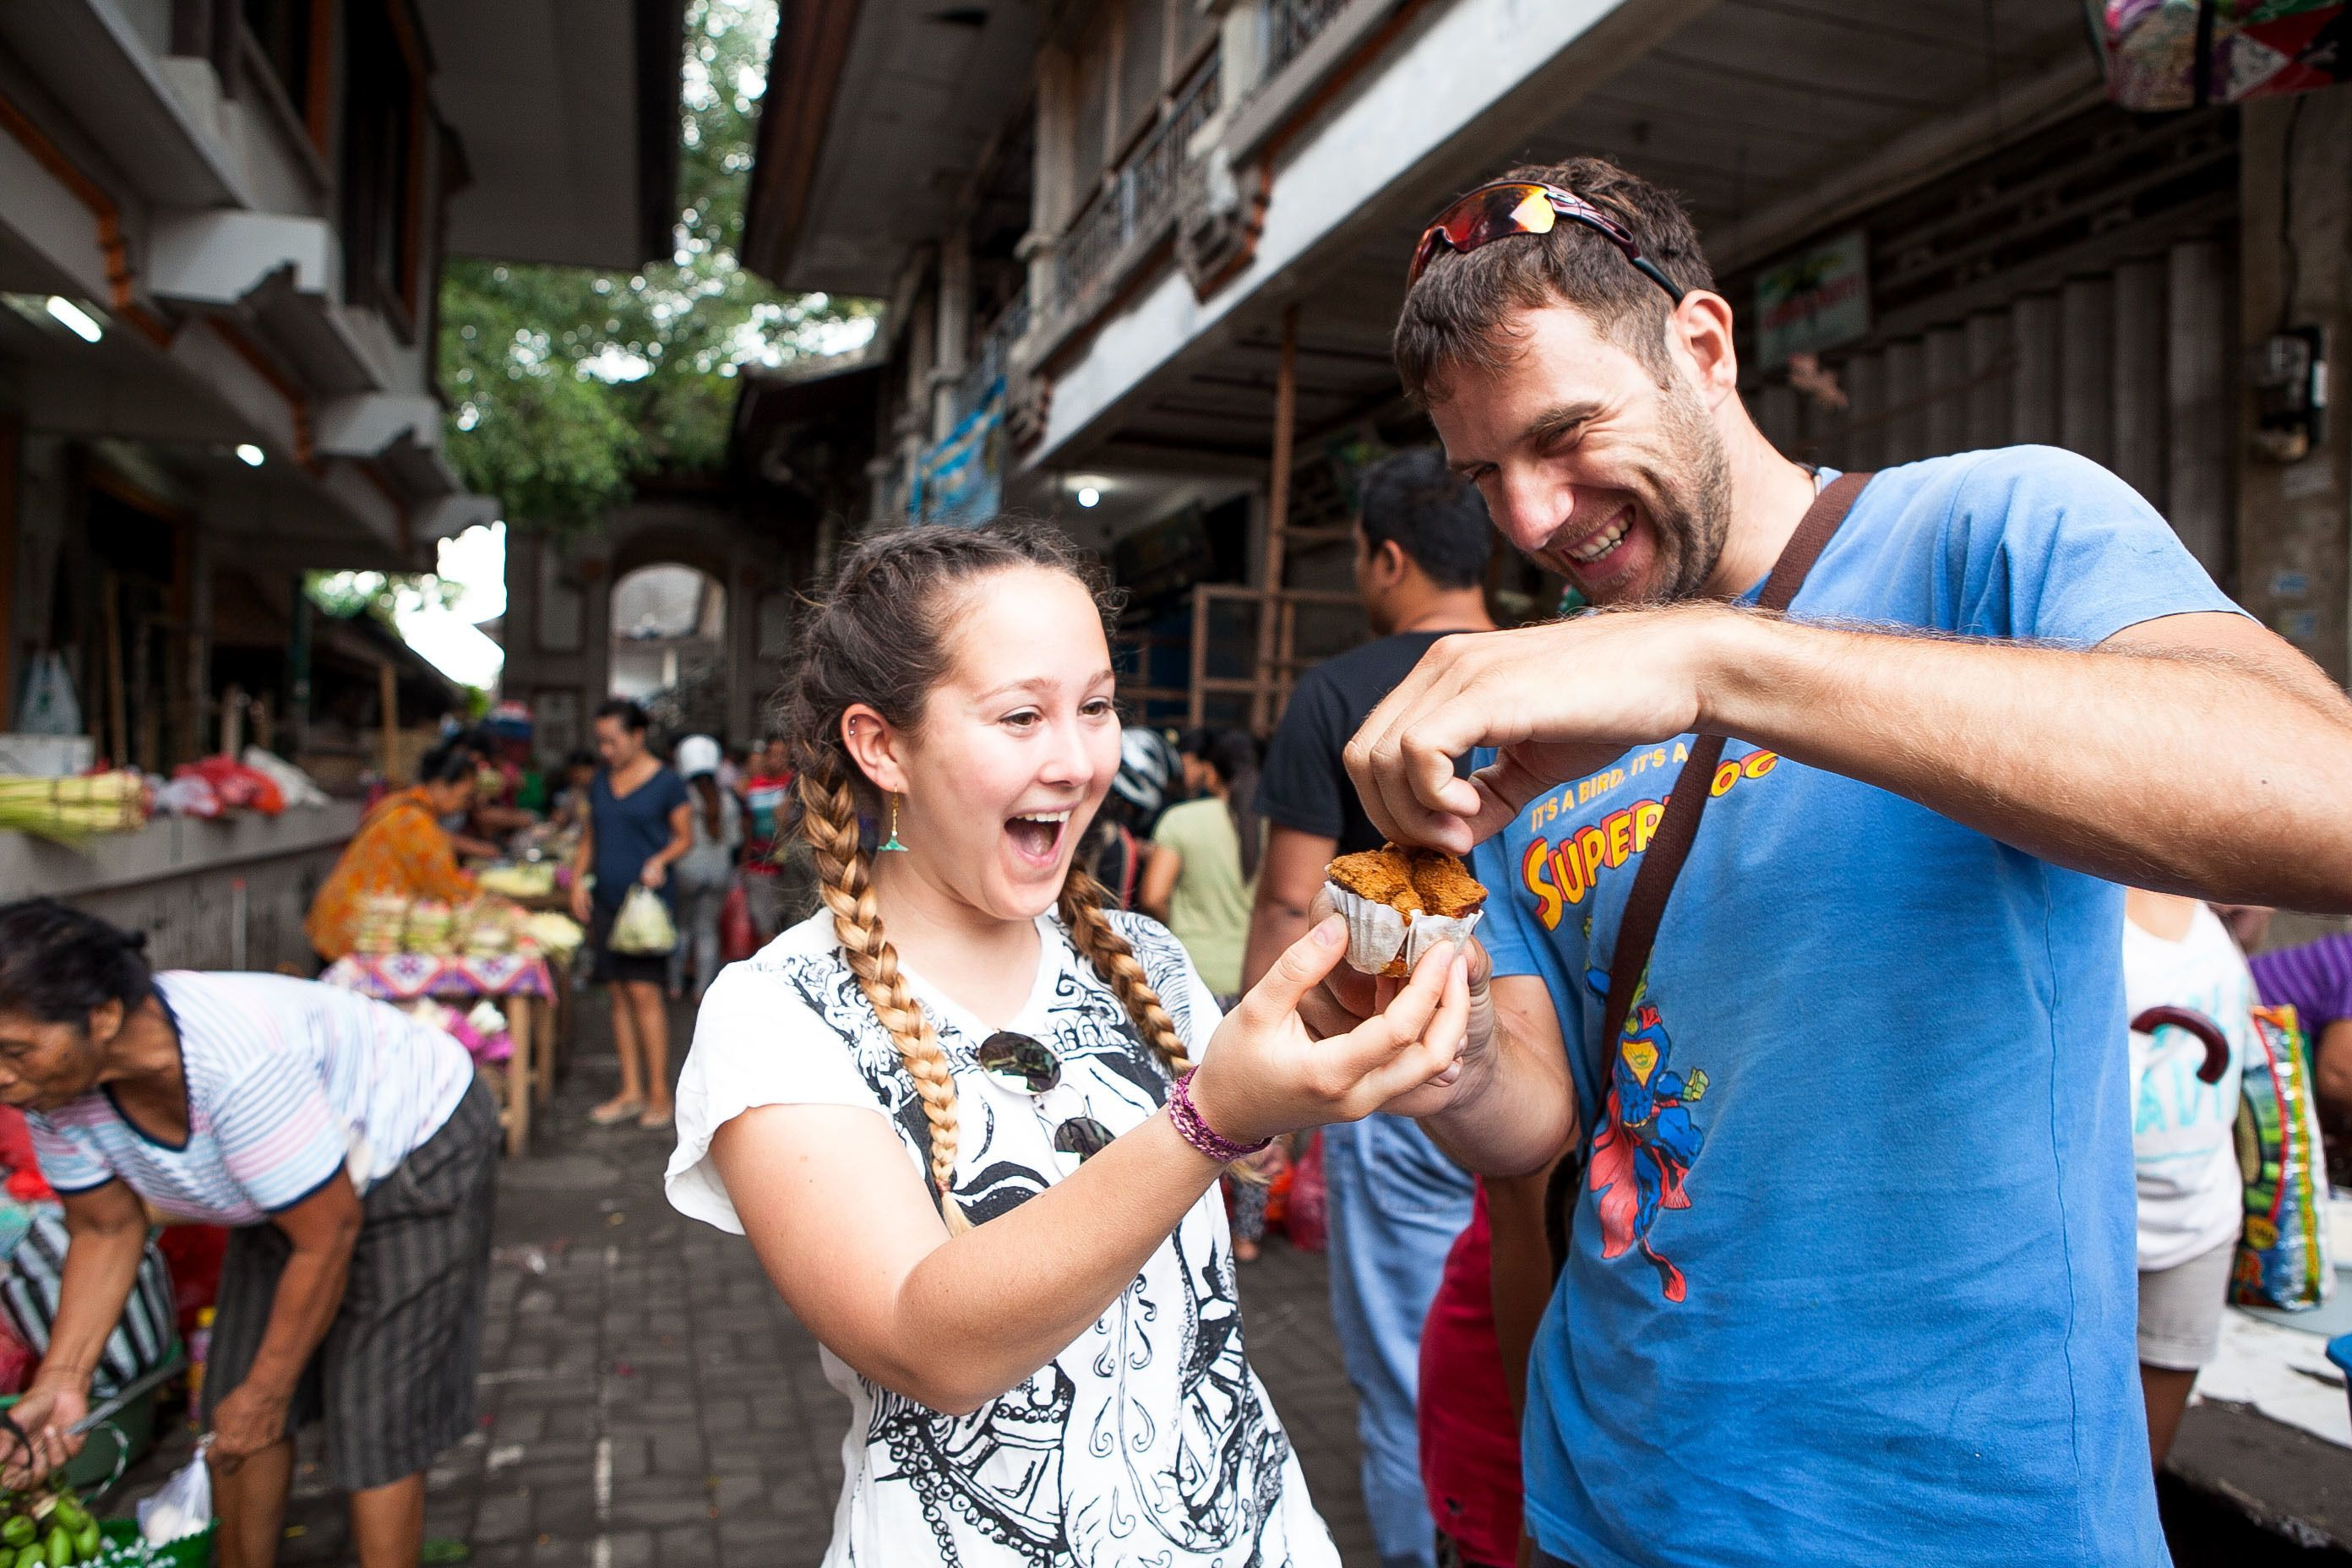 Two people enthusiastically eating food on the streets of Indonesia